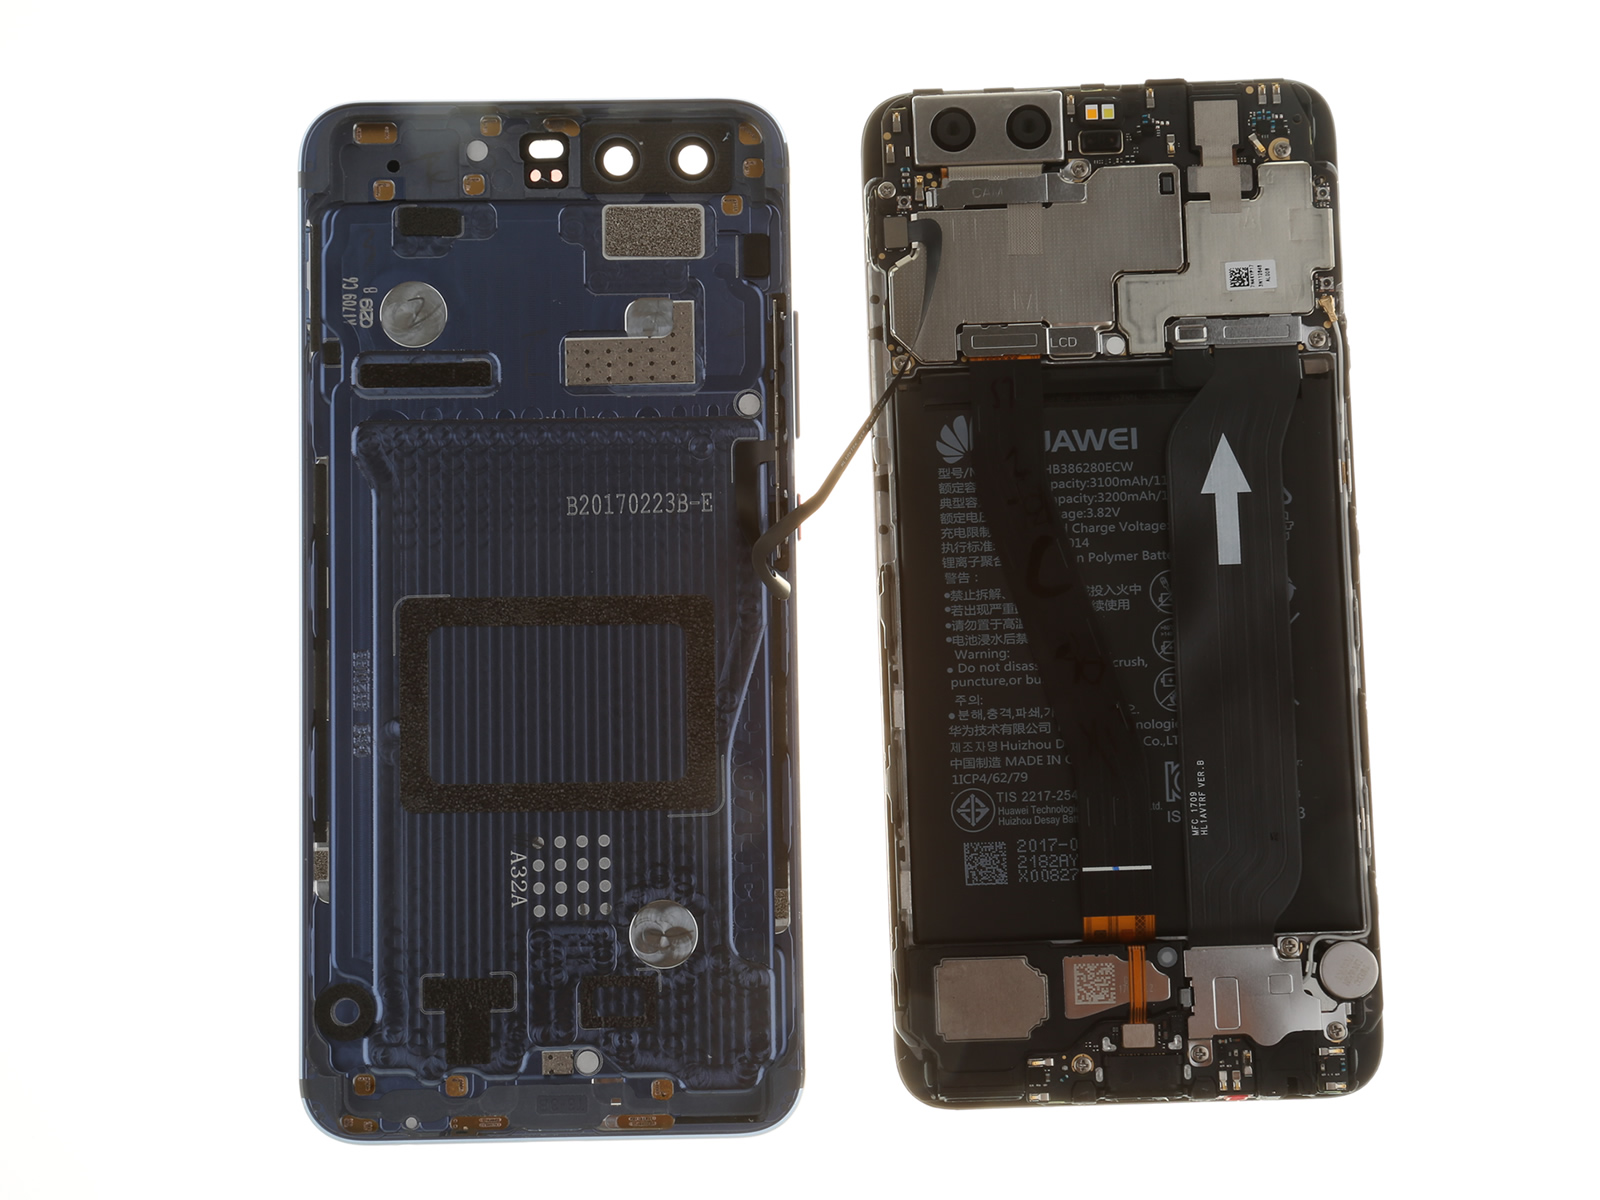 huawei p10 teardown myfixguide com insert cable pinout insert cable connections